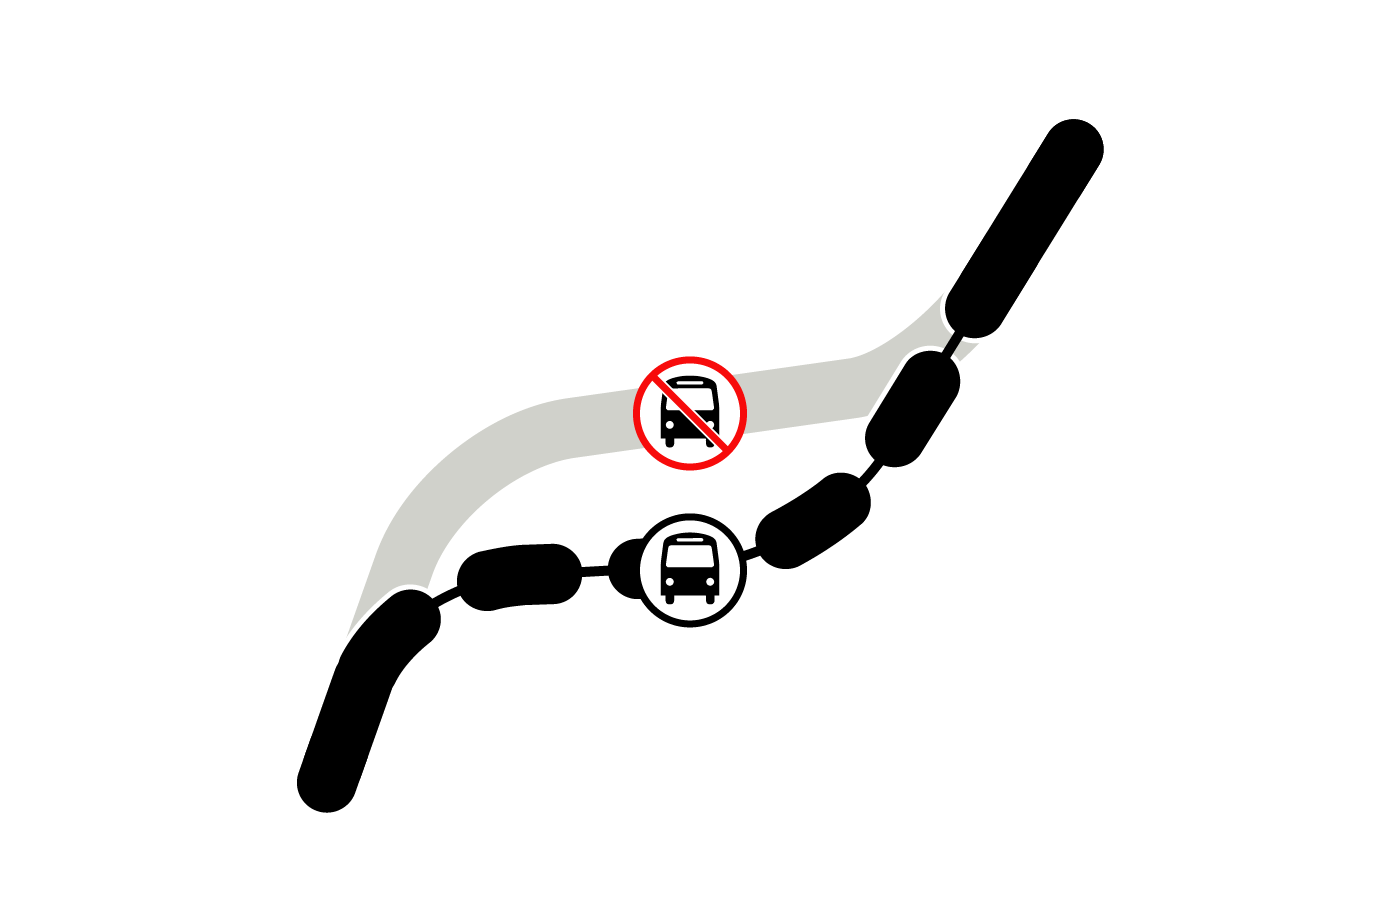 graphic indicating reroute